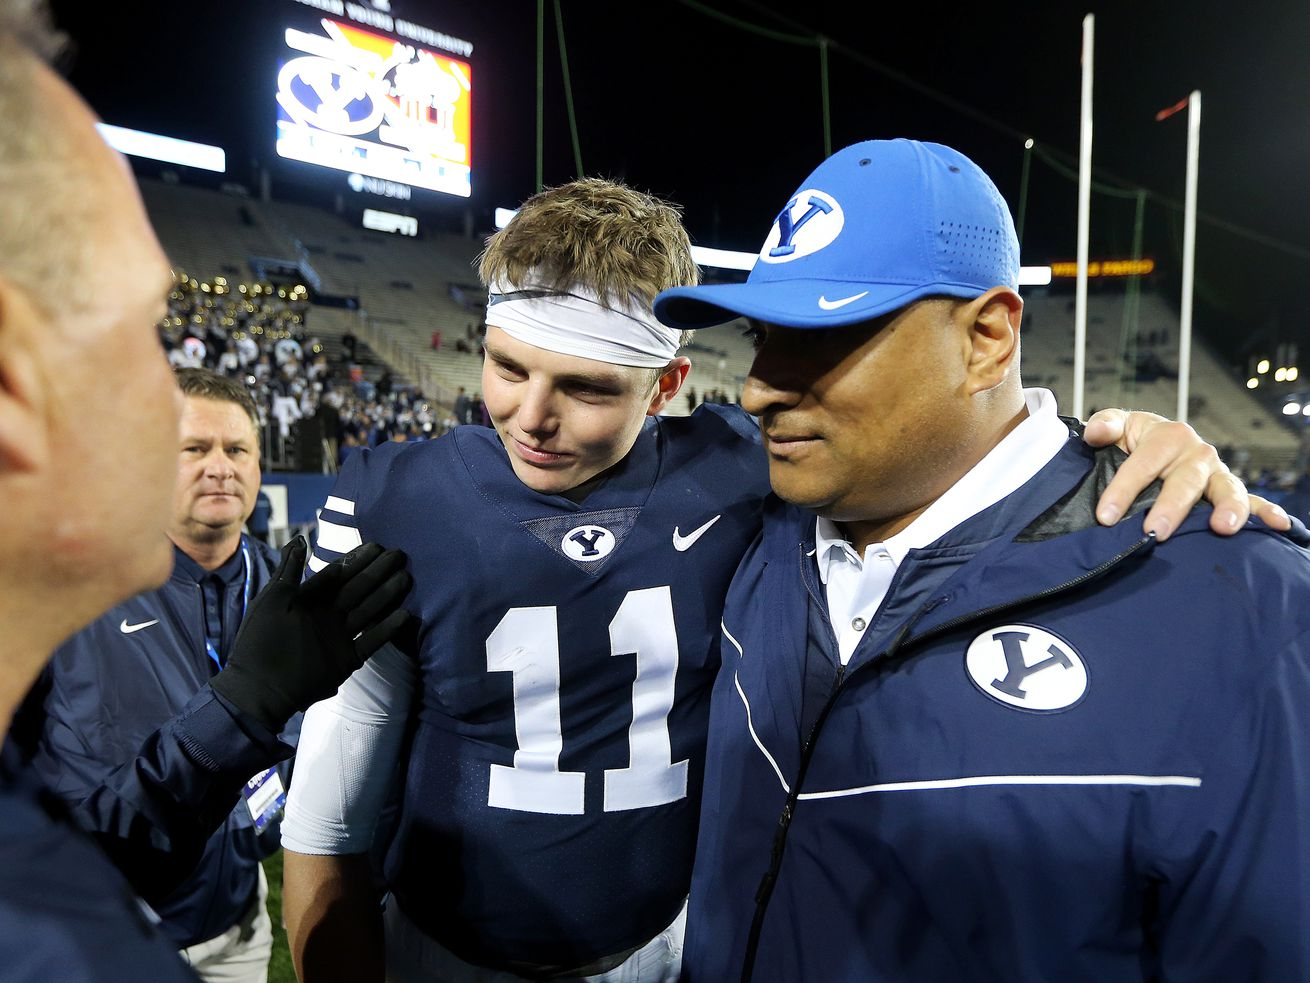 Brigham Young Cougars quarterback Zach Wilson (11) talks with Brigham Young Cougars head coach Kalani Sitake as they celebrate the 49-23 win over Hawaii at LaVell Edwards Stadium in Provo on Saturday, Oct. 13, 2018.